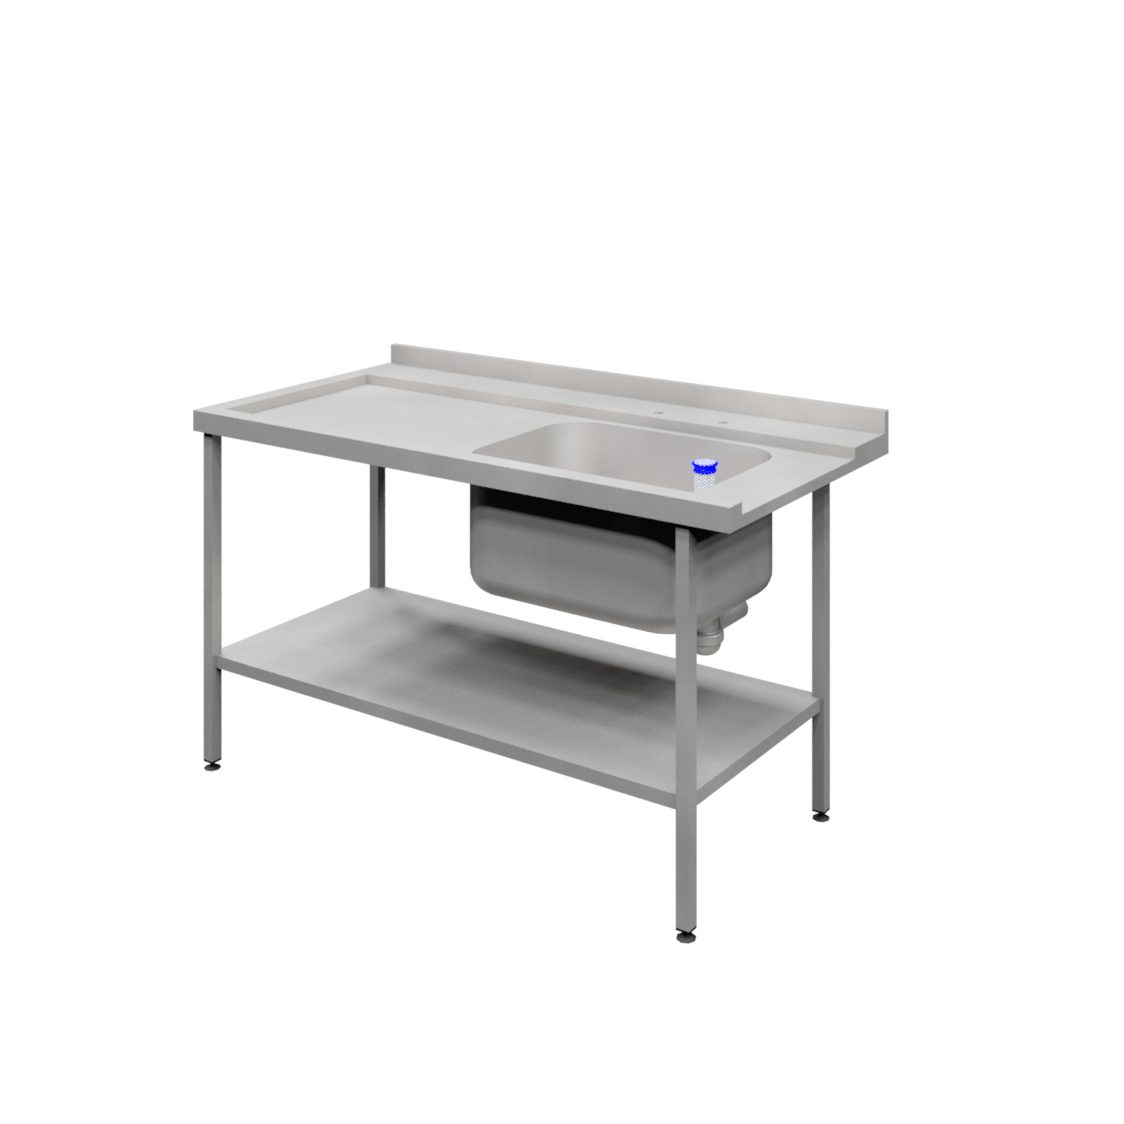 MCF_Dishwash Inlet Table_DIS1500x740